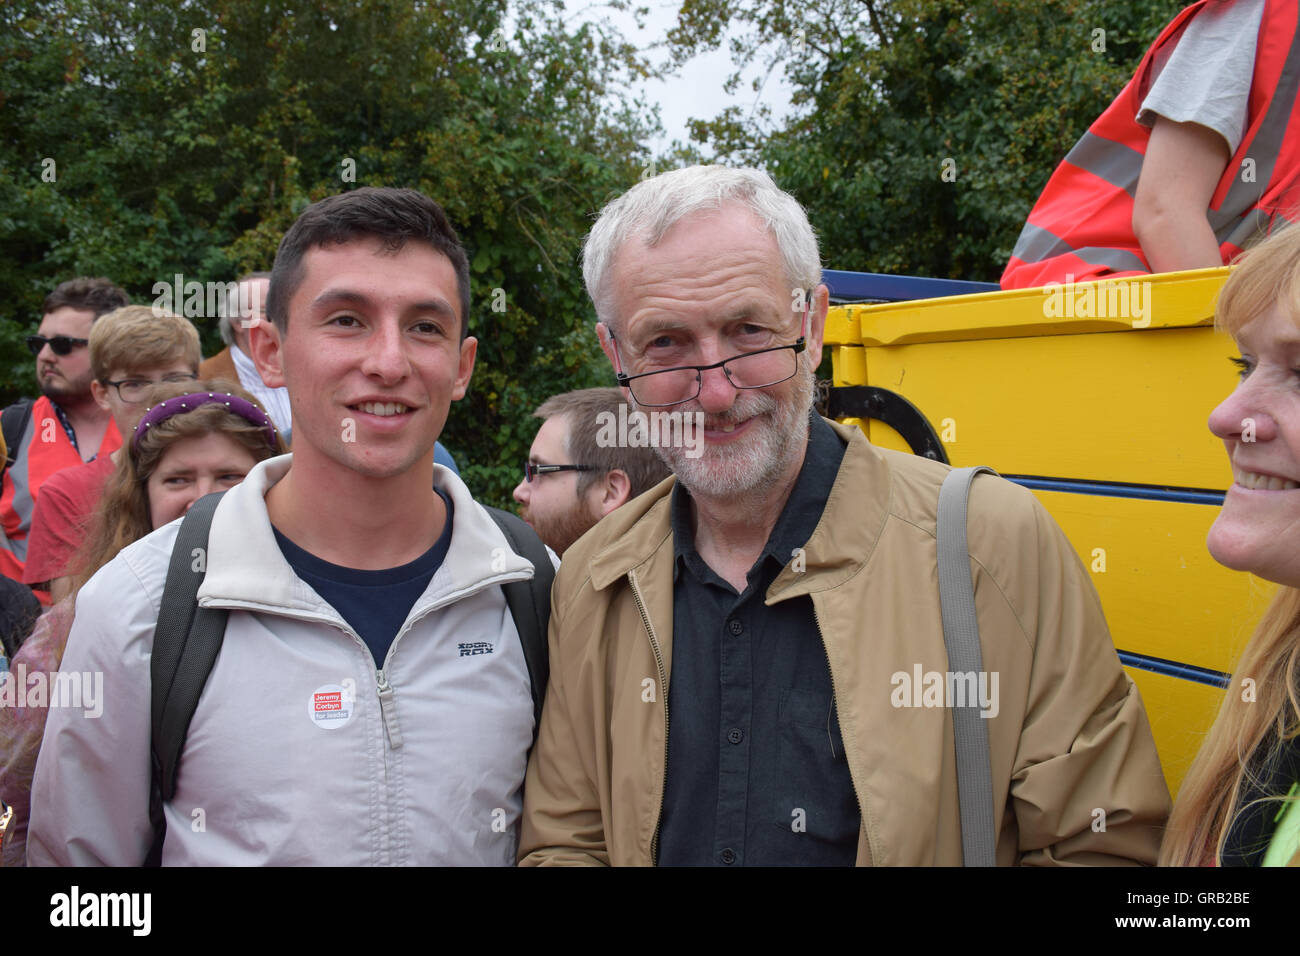 Jeremy Corbyn MP at the annual Burston School Strike rally, Burston, Norfolk 4 September 2016. - Stock Image